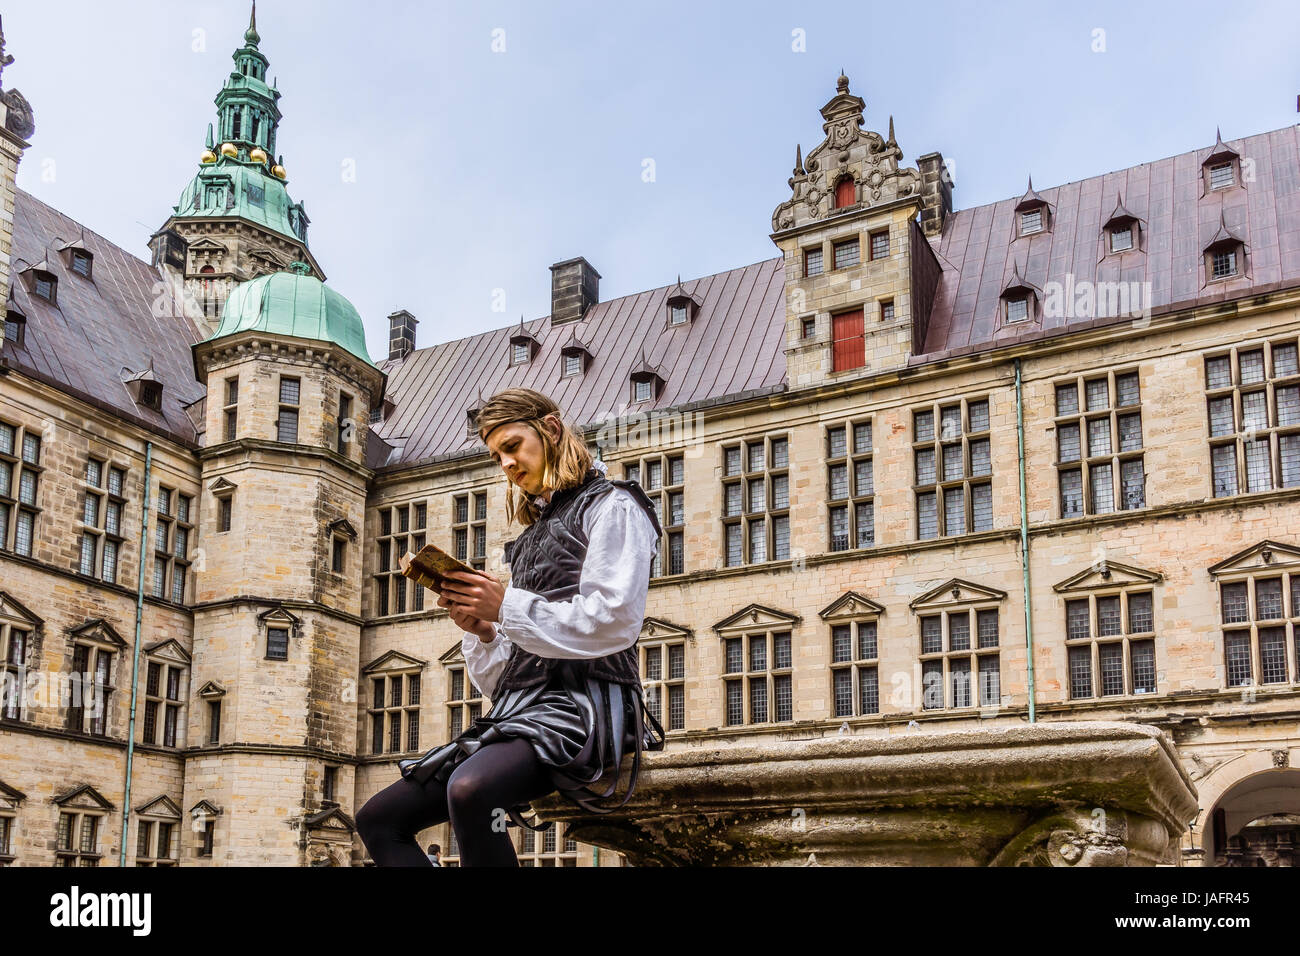 Actor performing prince Hamlet and reads a book at Kronborg Castle, Elsinor, Denmark, May 26, 2017 - Stock Image